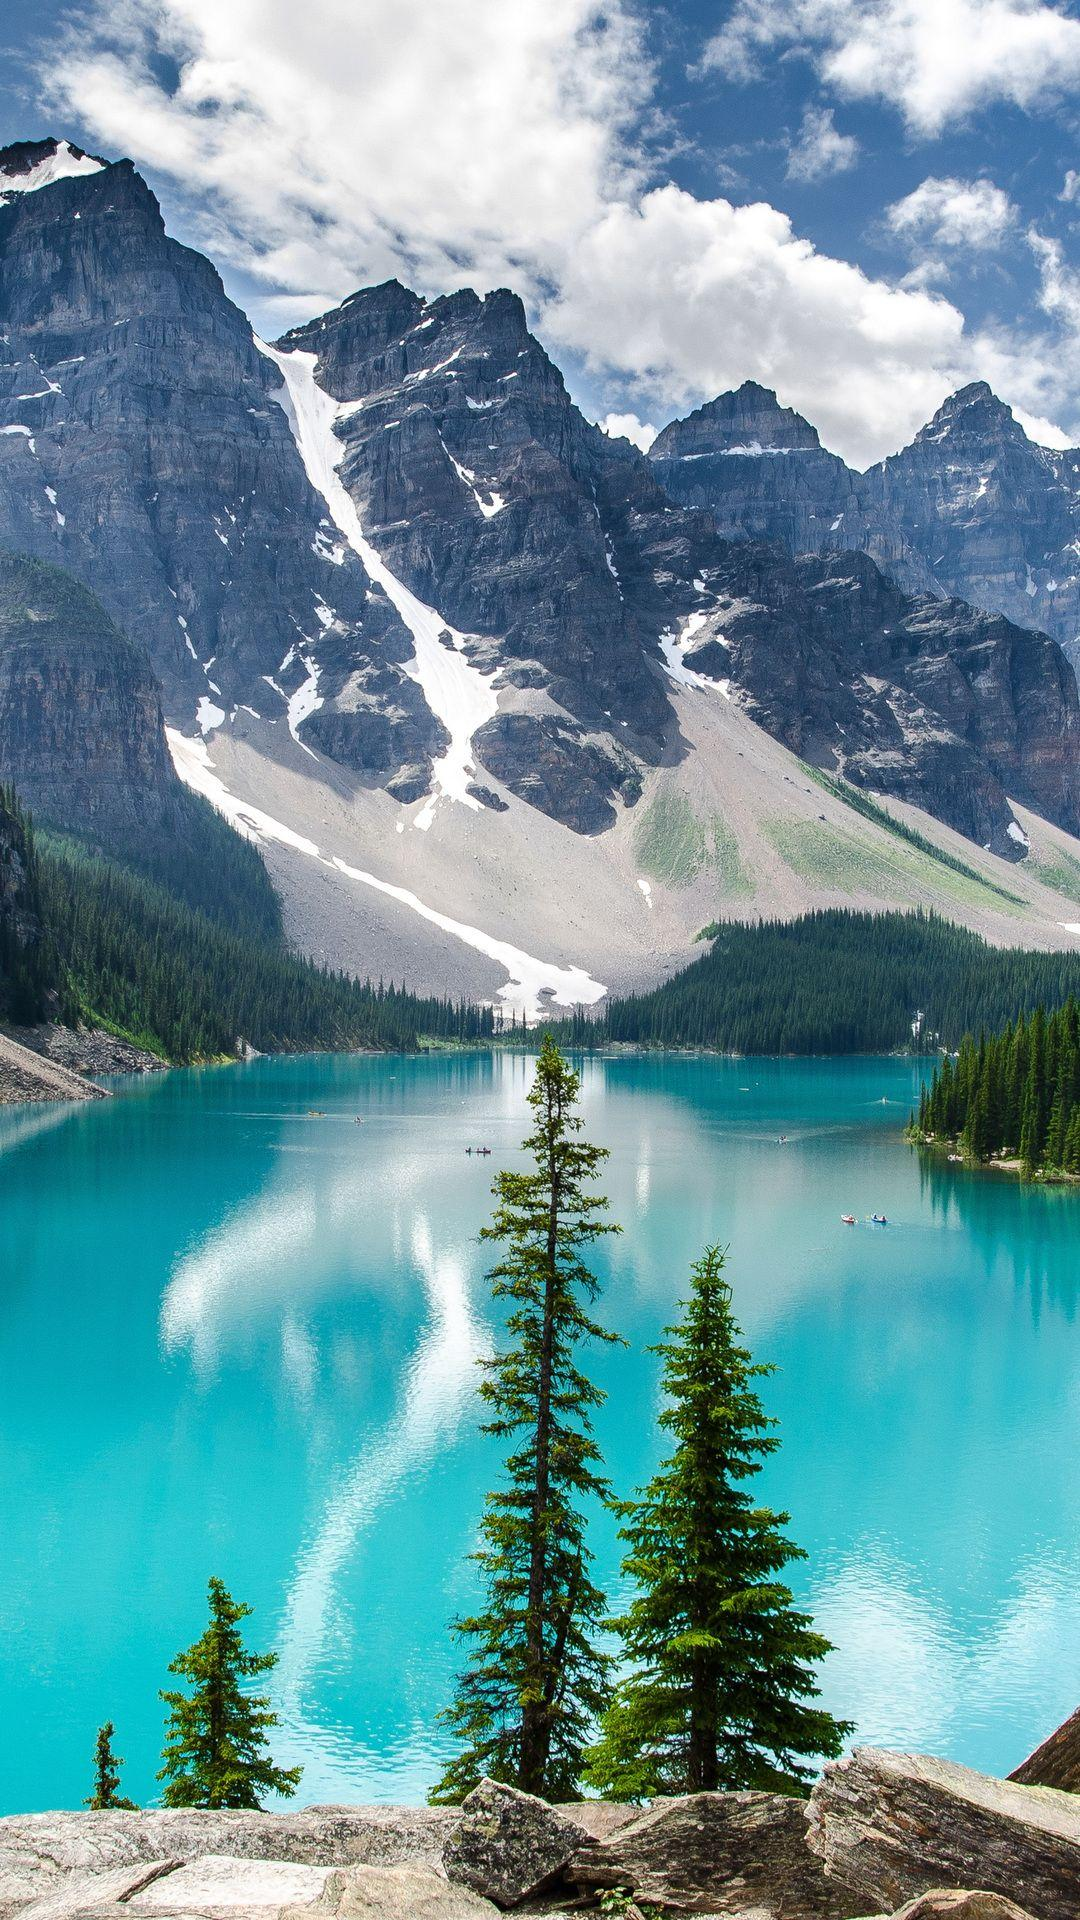 1080x1920 trees, banff national park, mountains, lake, moraine lake